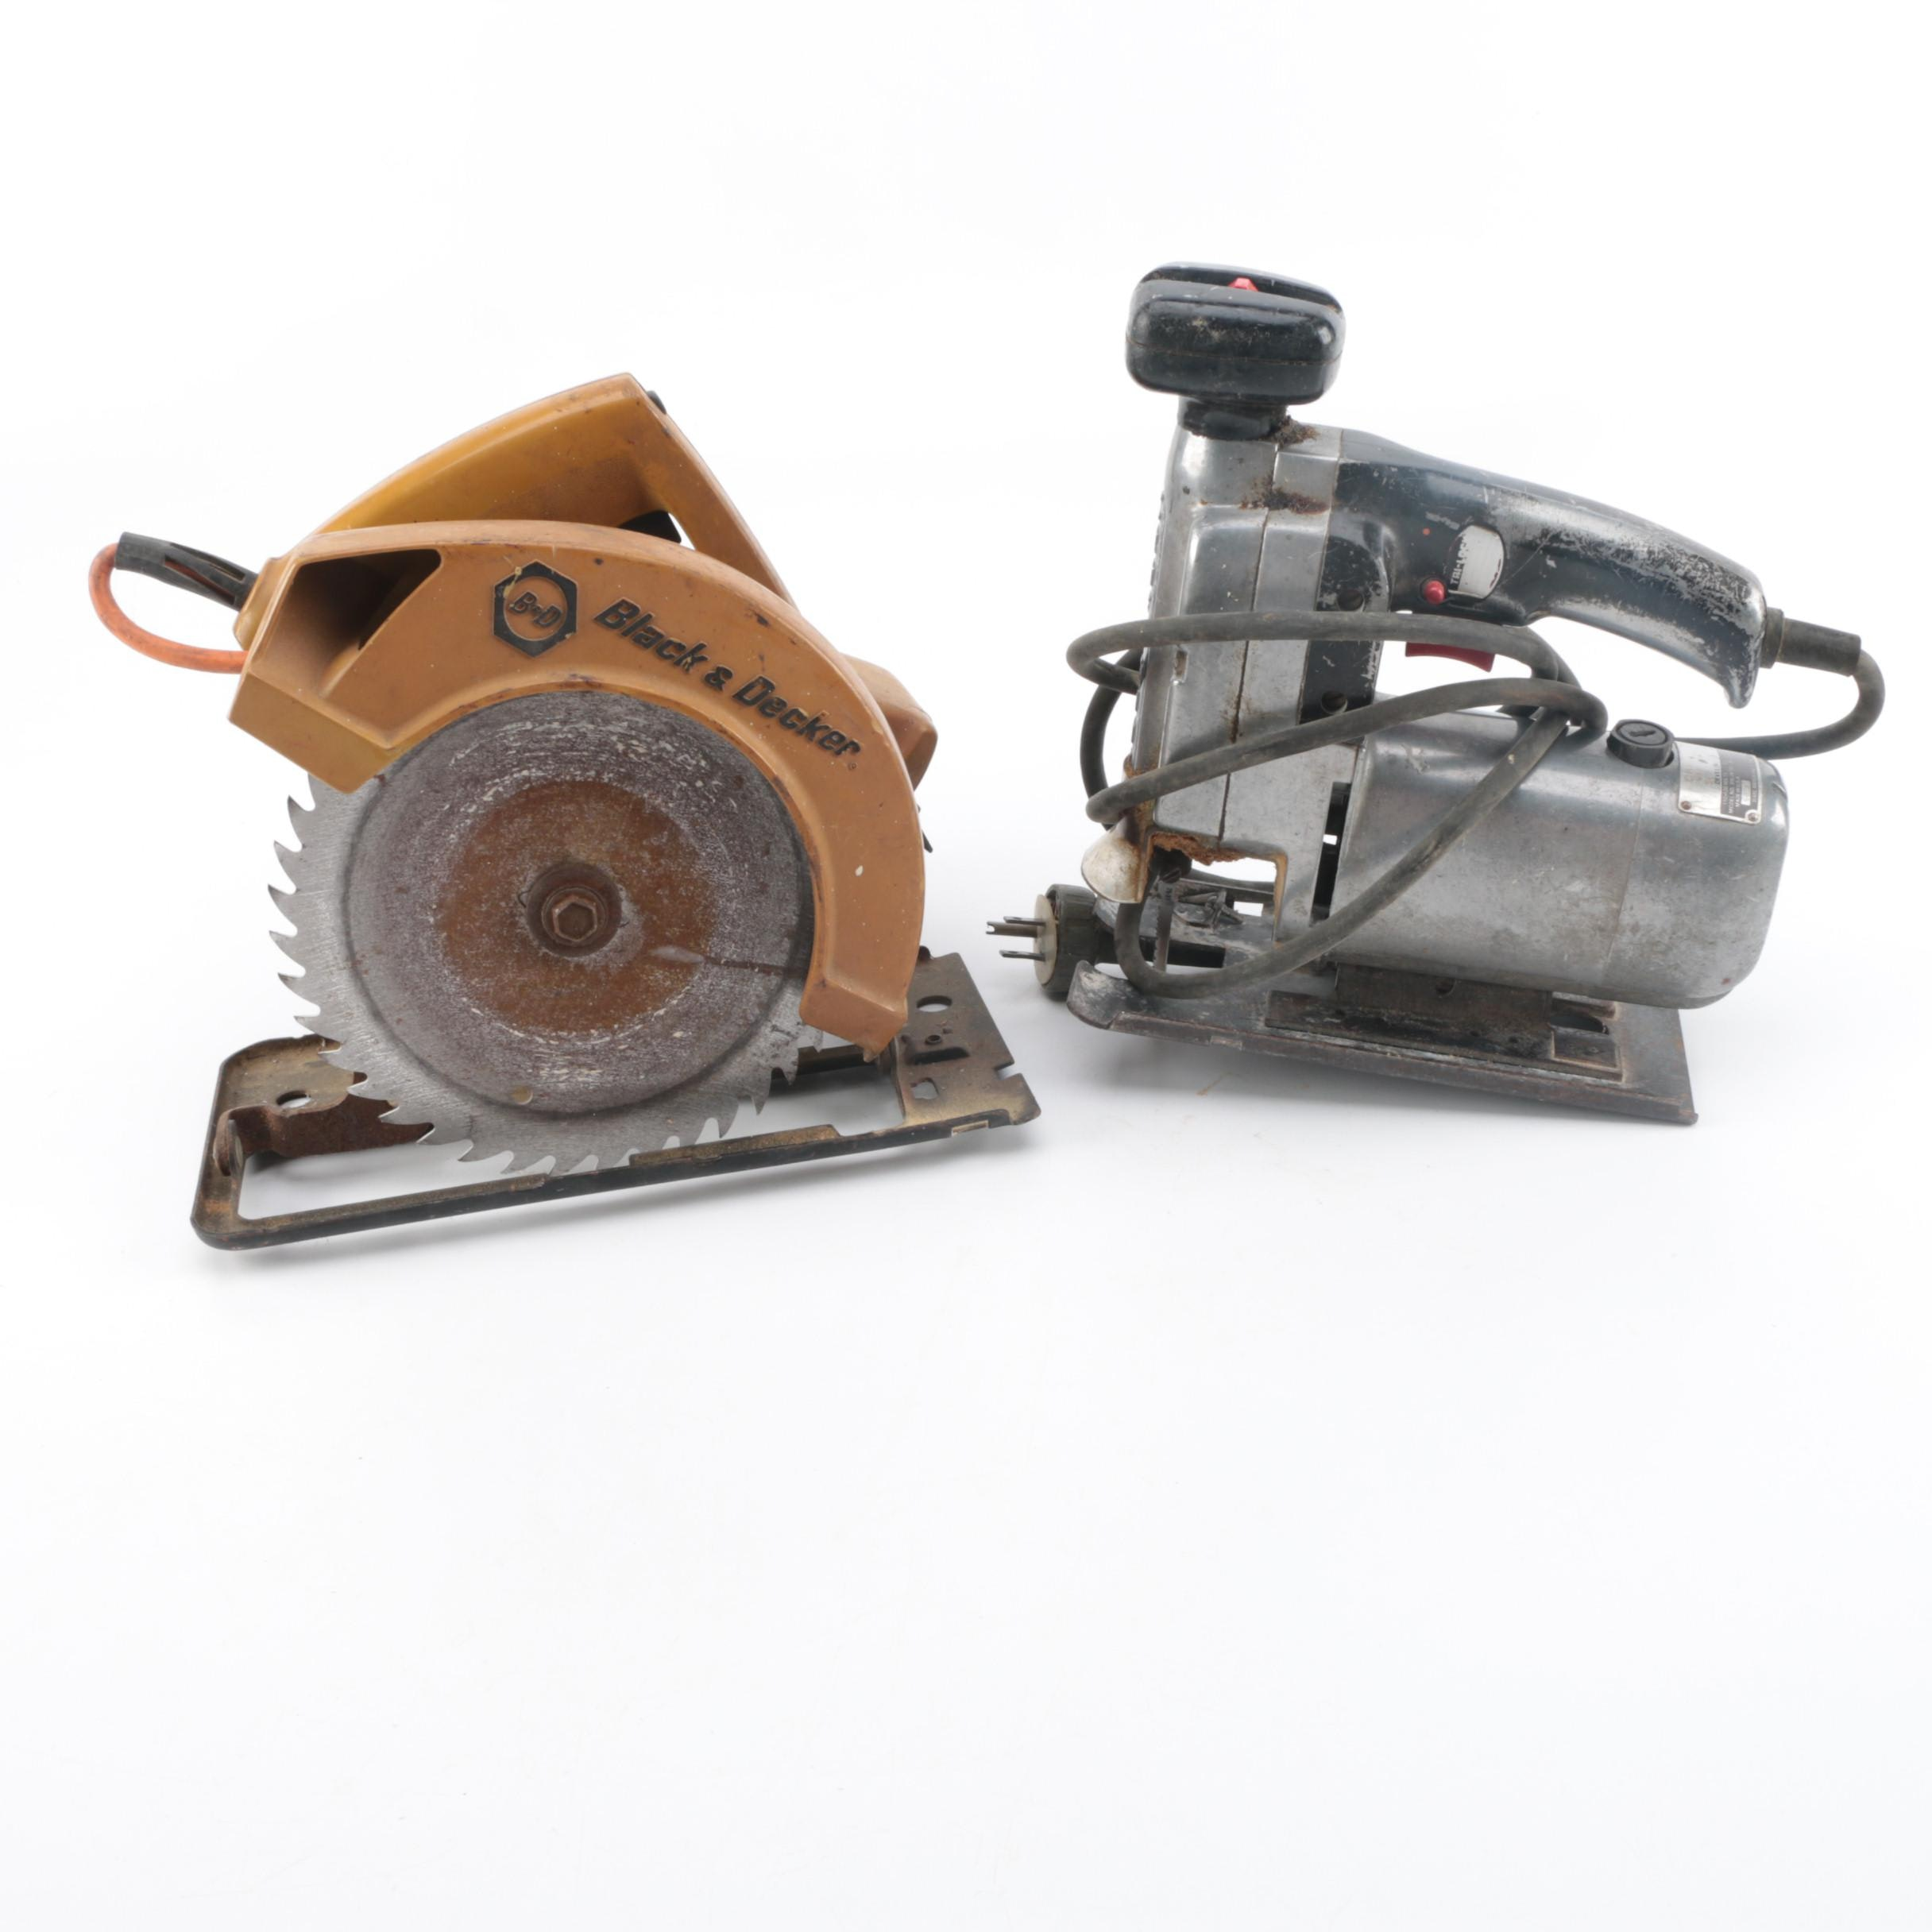 Power Saws Including Black & Decker